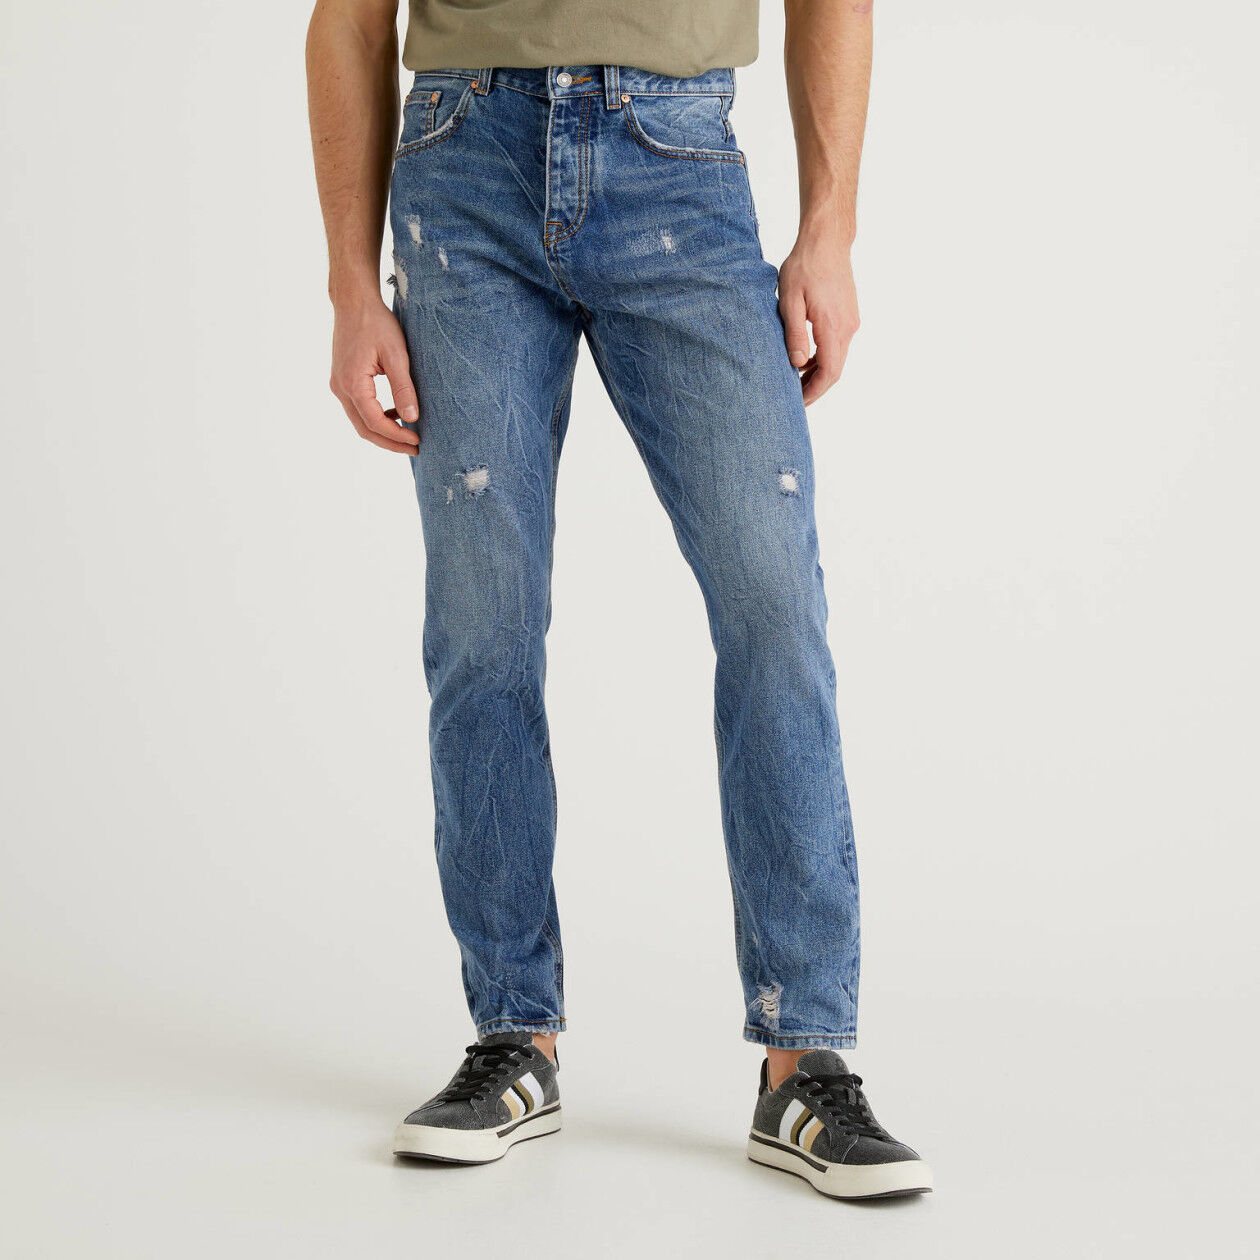 Five-pocket regular fit jeans